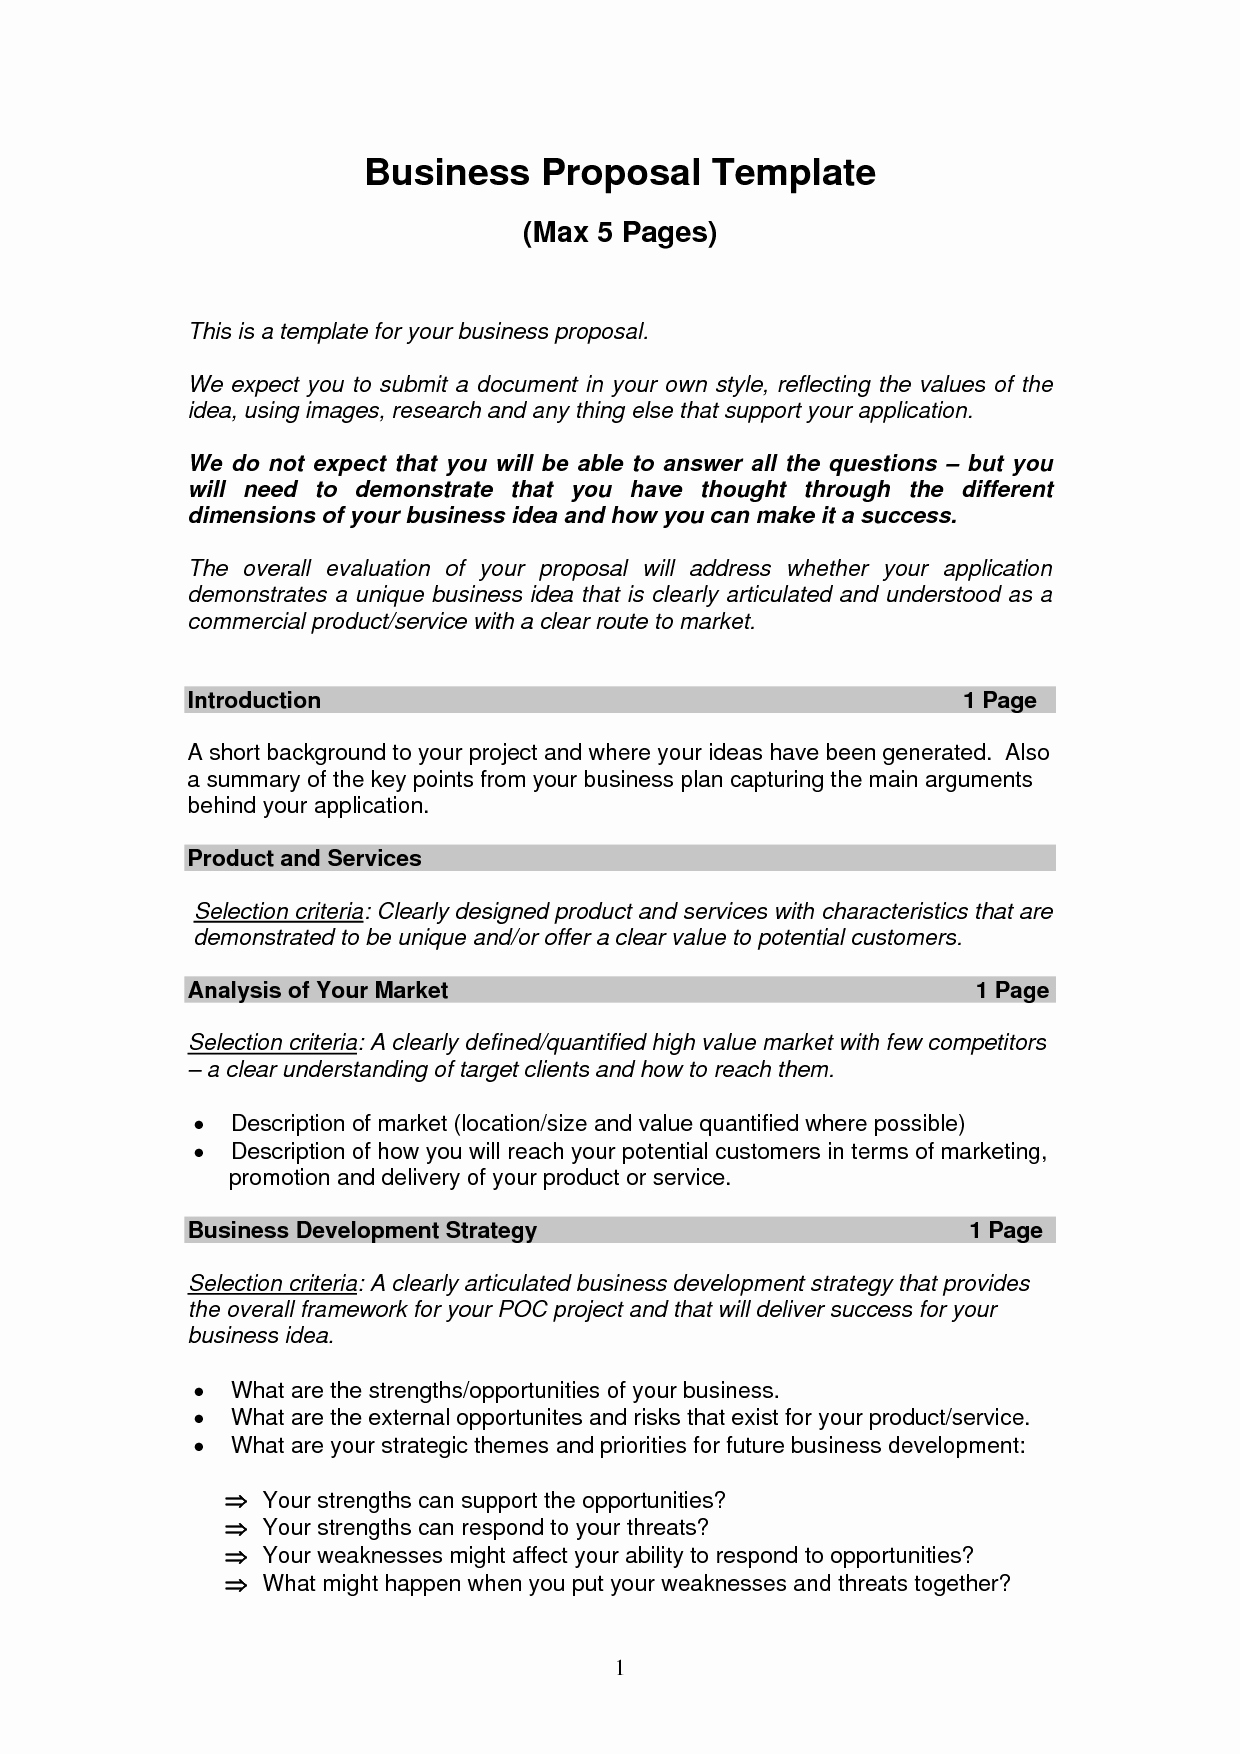 Business Proposal Template Pdf Awesome Printable Sample Business Proposal Template form